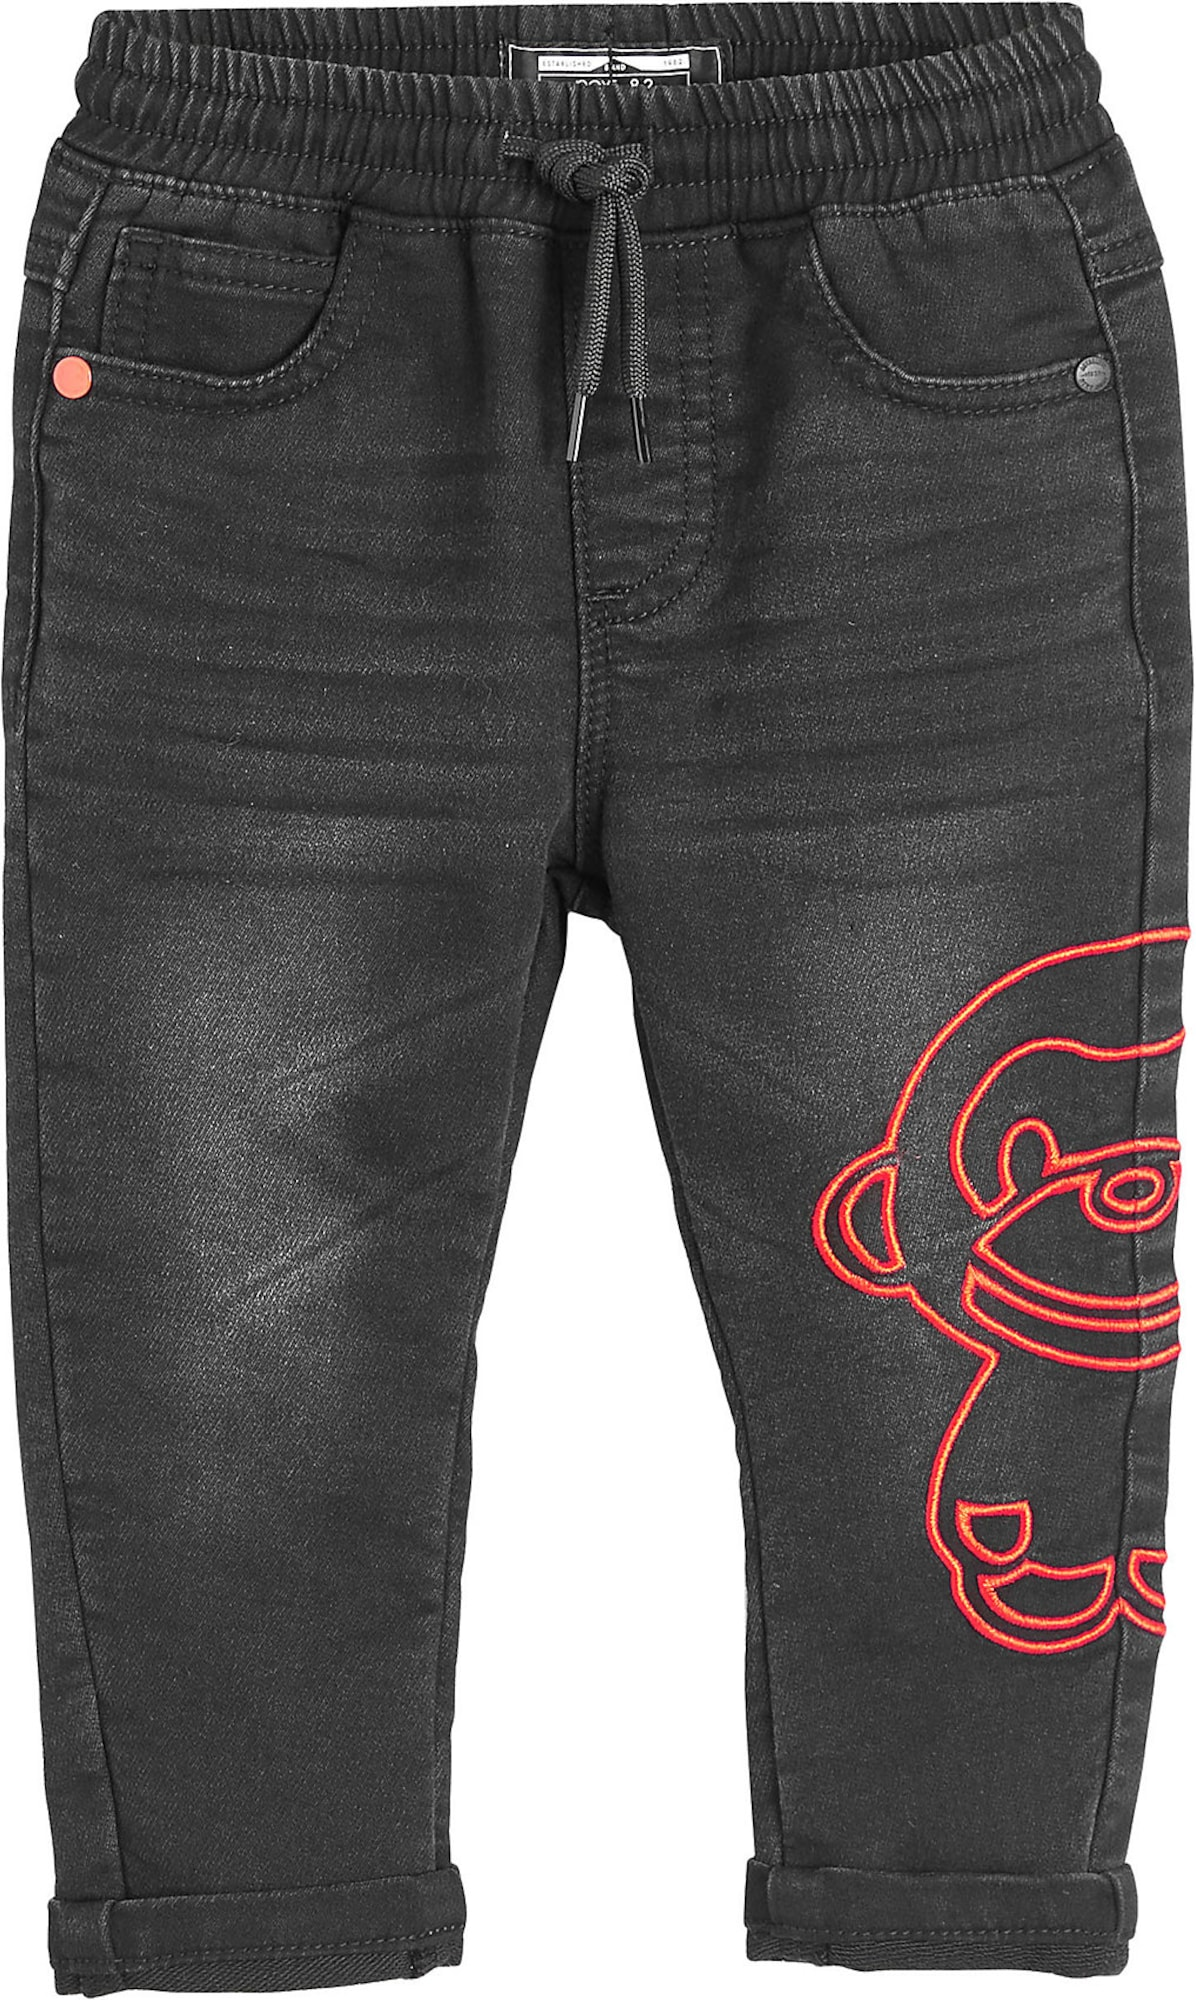 Babyhosen - Jeanshose - Onlineshop ABOUT YOU